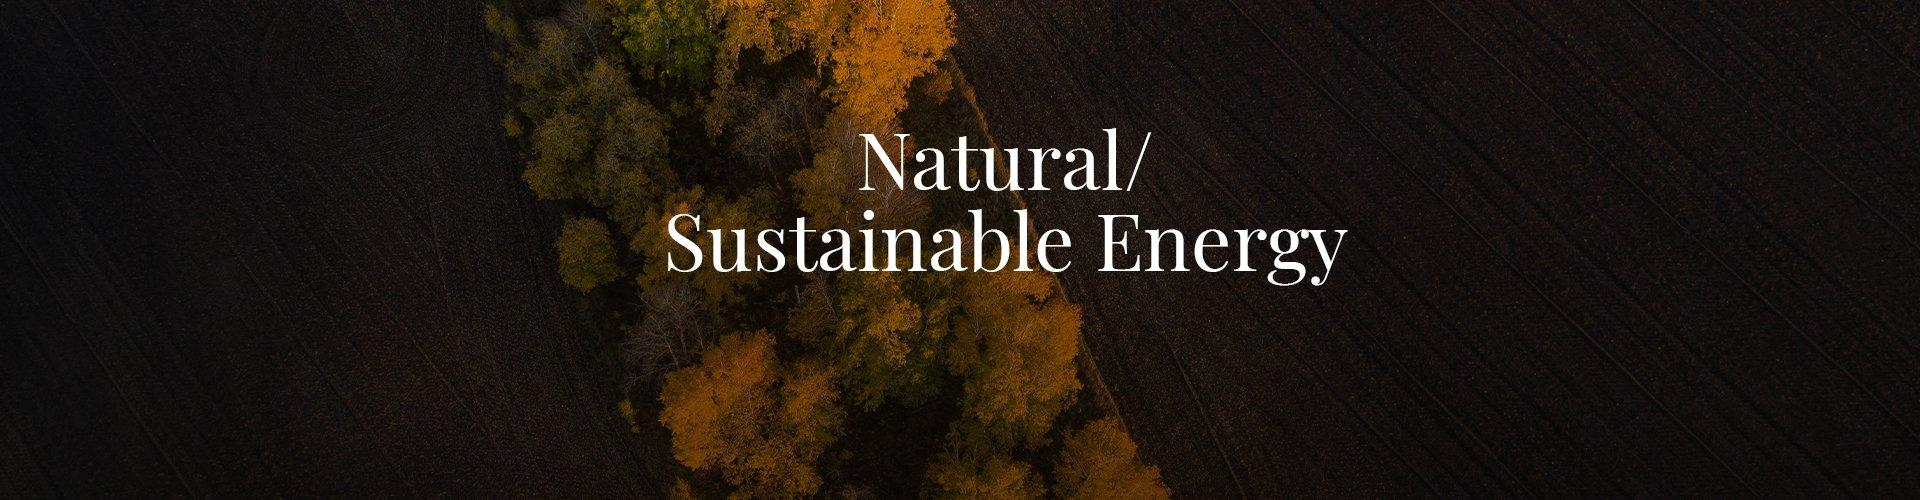 An aerial image of a harvested field with trees running through the middle with text saying Natural/Sustainable Energy